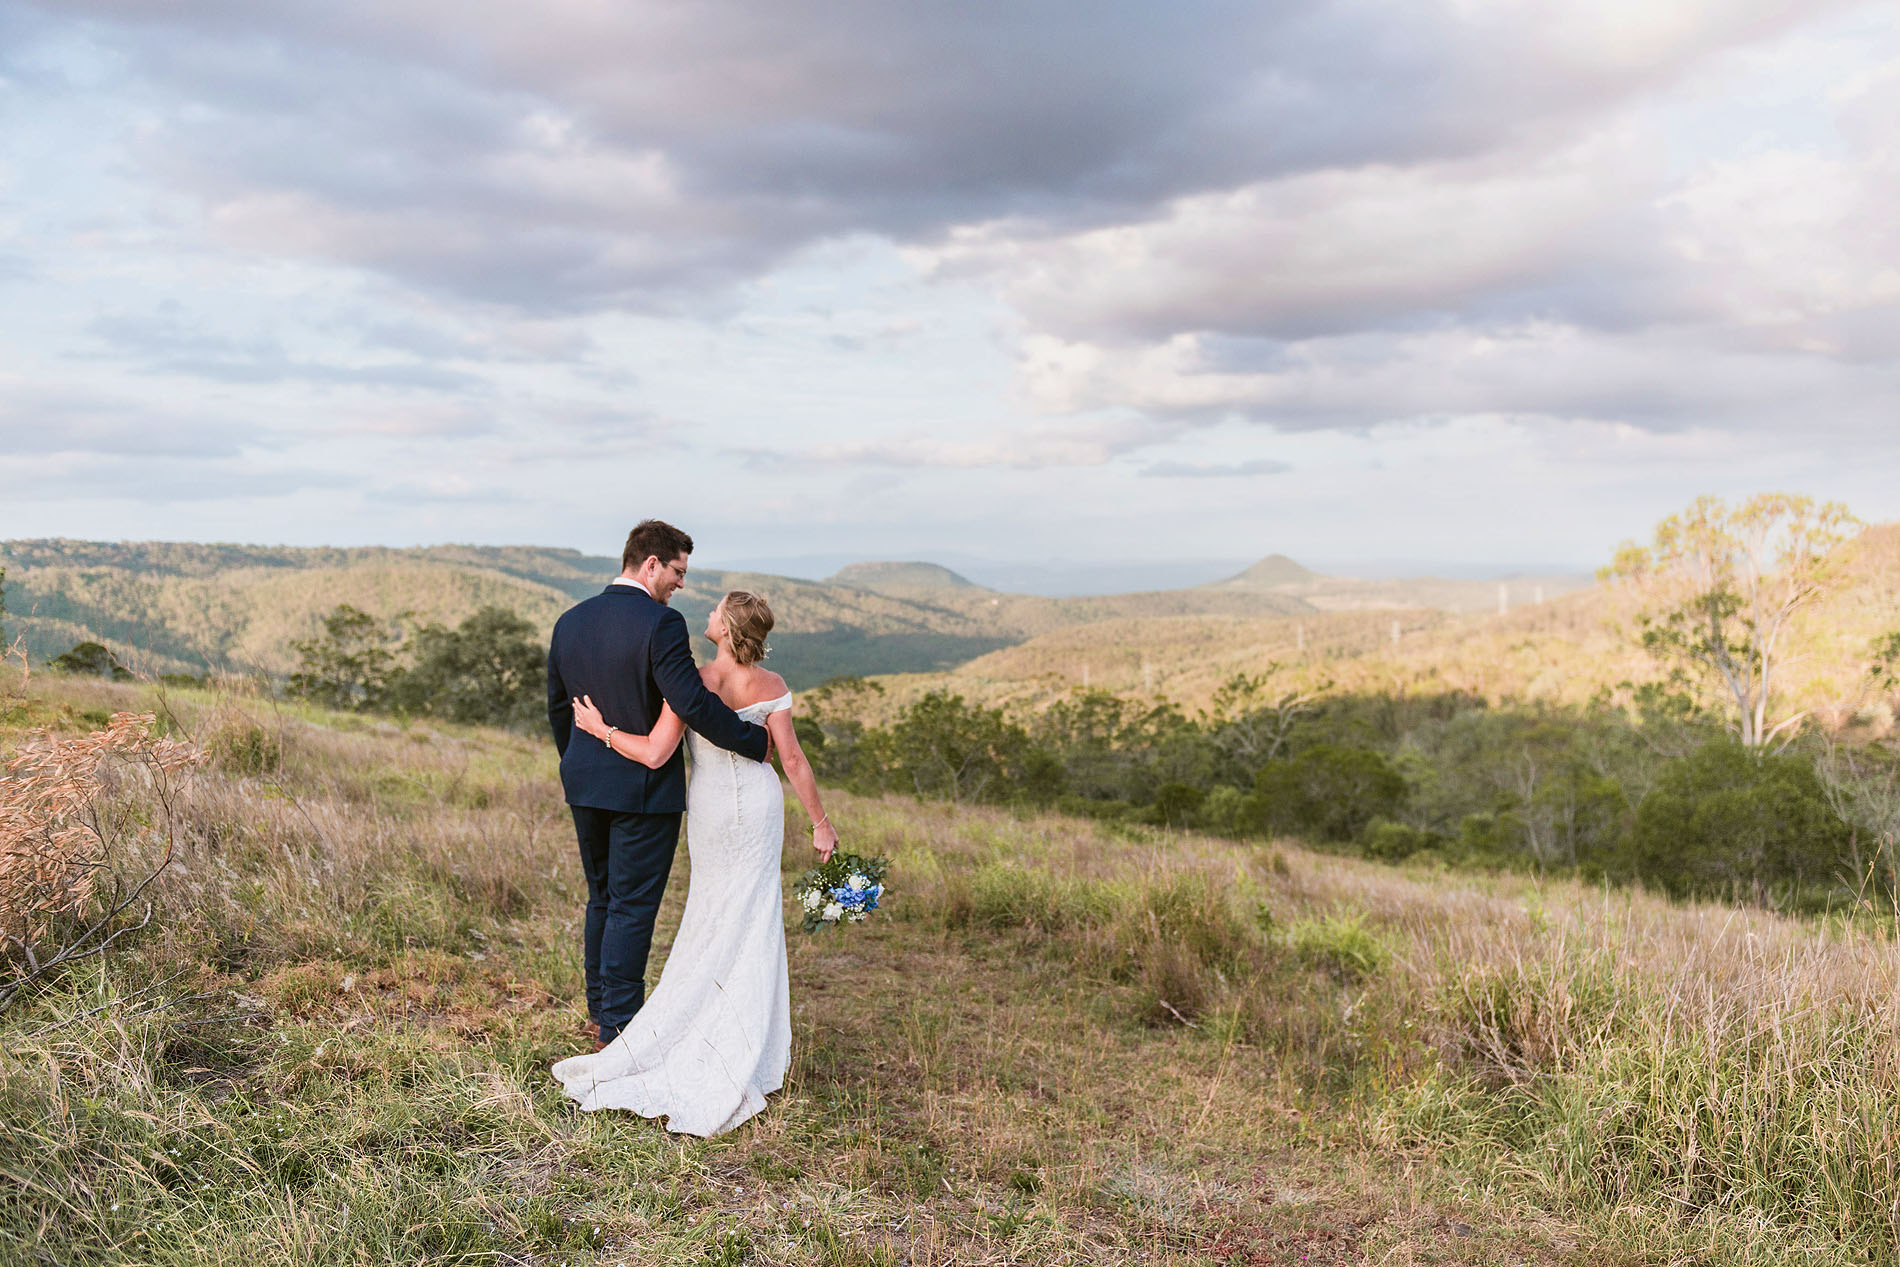 181206 1087 preston peak wines winery wedding toowoomba valley view countryside landscape